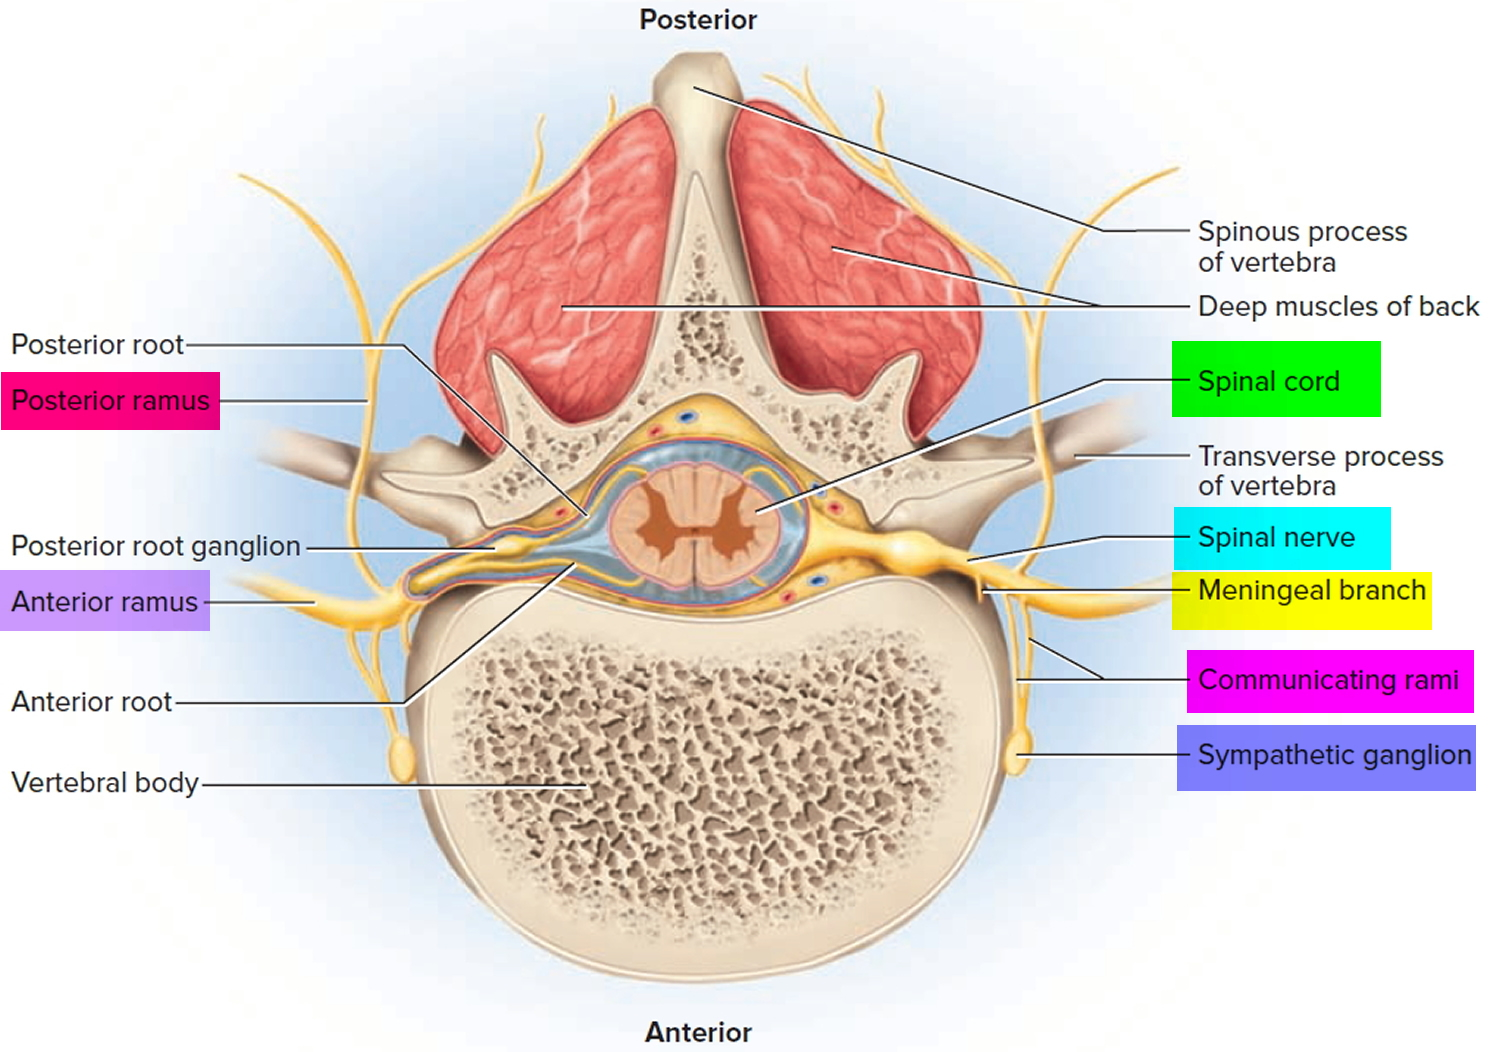 lumbar nerve root diagram best free network software spinal cord anatomy parts and functions